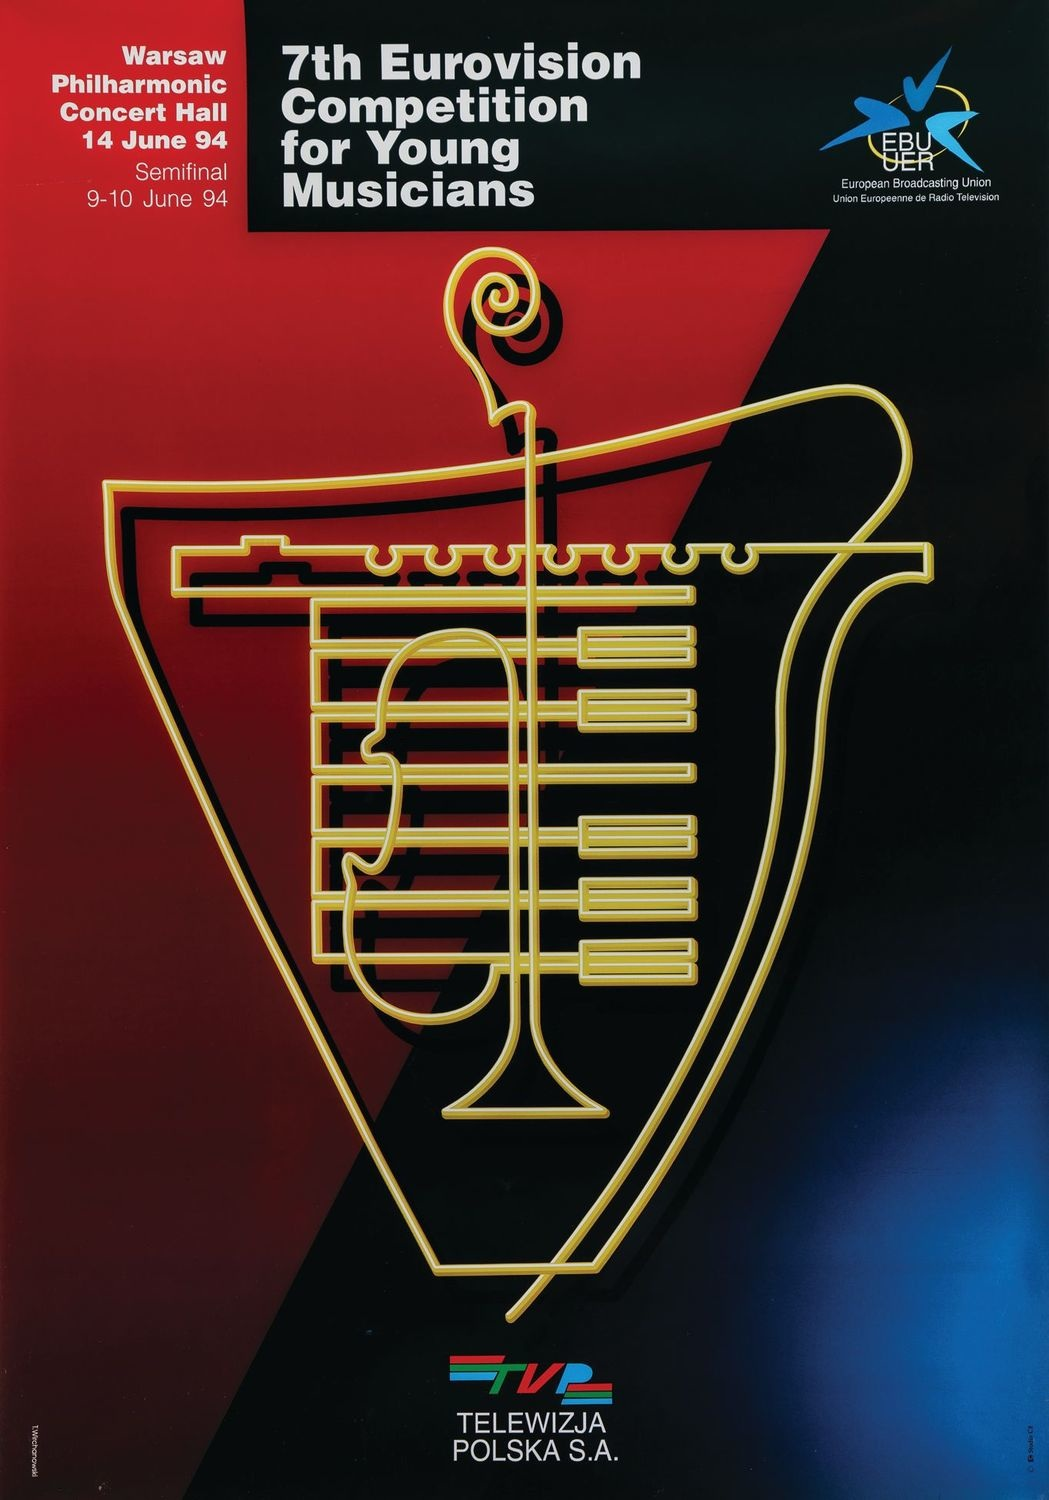 Plakat 7th EUROVISION COMPETITION FOR YOUNG MUSICIANS, 1994